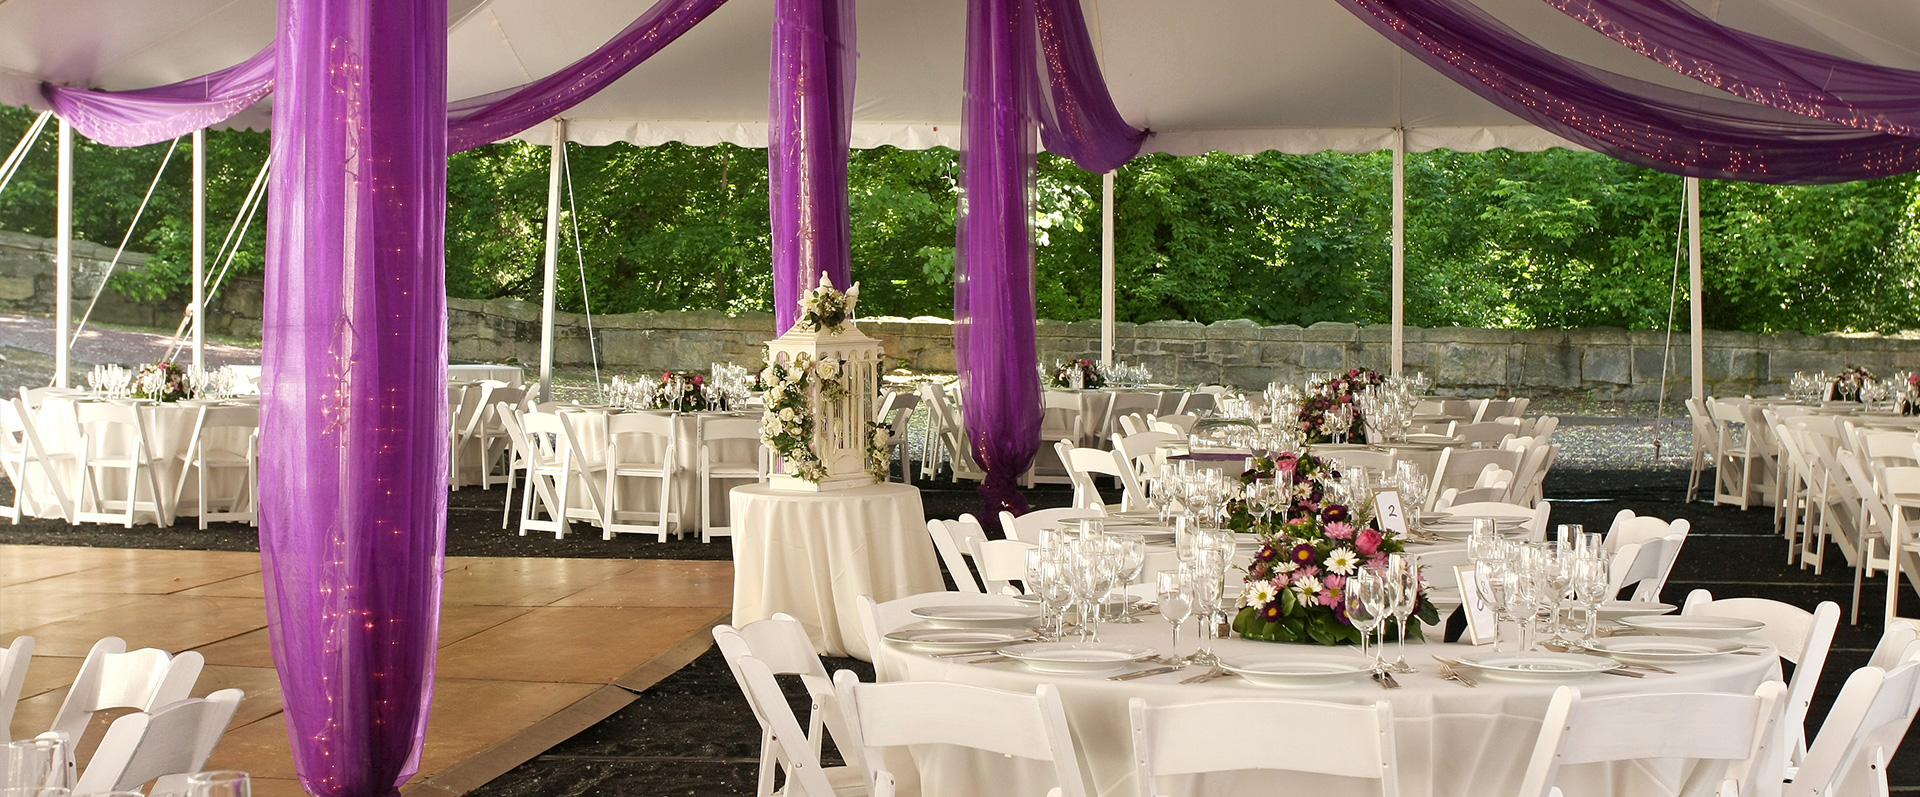 Tent And Chair Rental Large Tents For Weddings And 20x40 Pole Tent